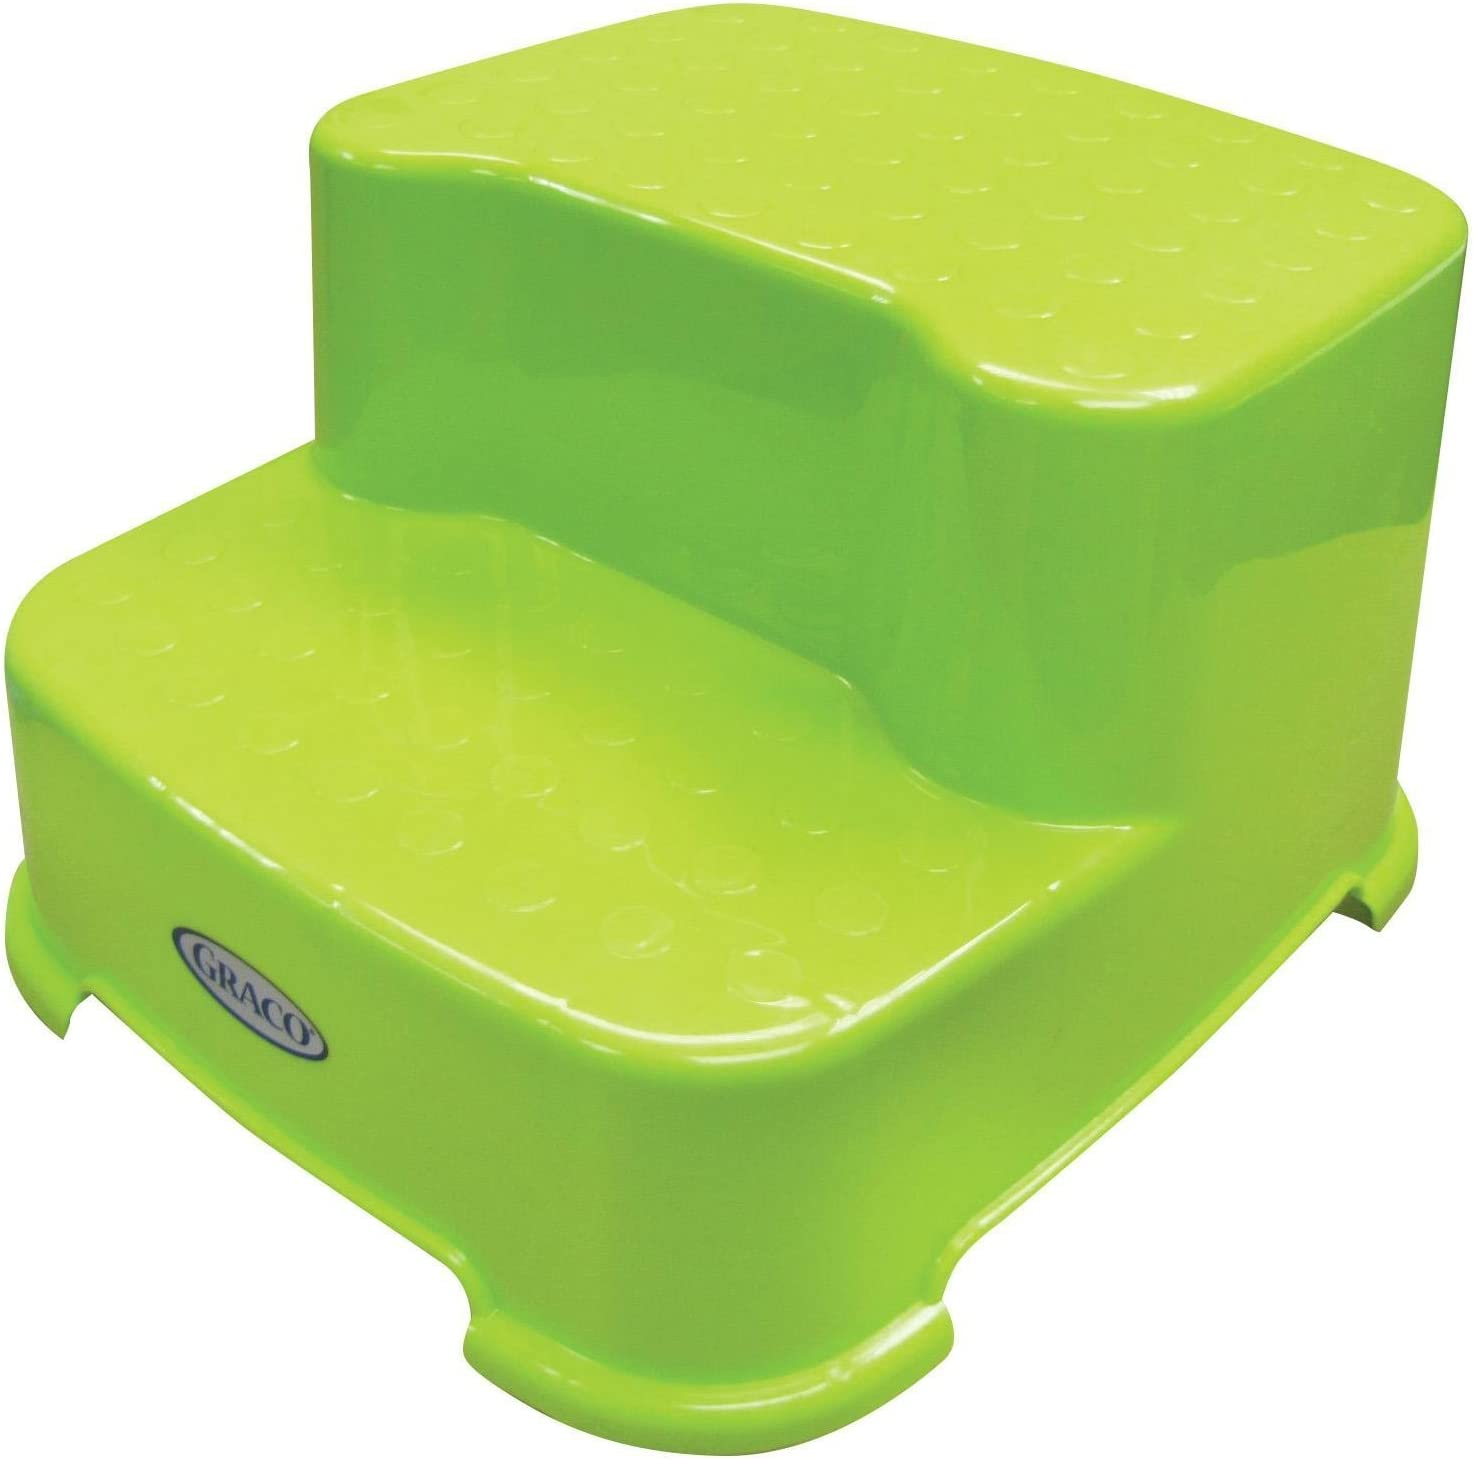 Graco 2 Step Transitions Step Stool Green  sc 1 st  Amazon.com & Kidsu0027 Step Stools | Amazon.com islam-shia.org